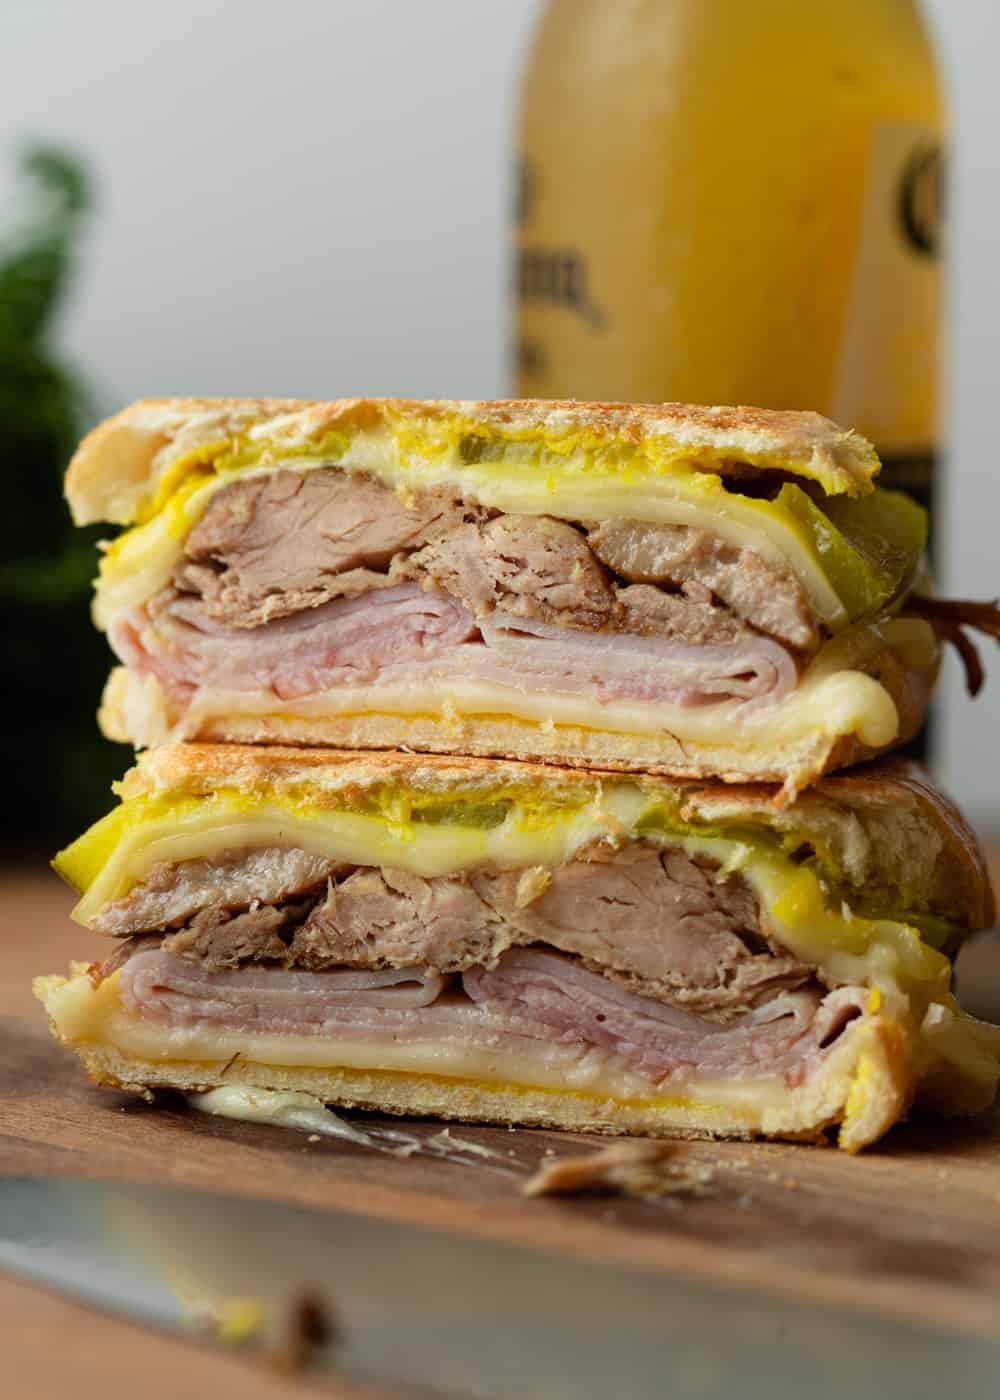 Close up image of sandwich Cubano with pork, Swiss cheese, mustard, ham and pickles.